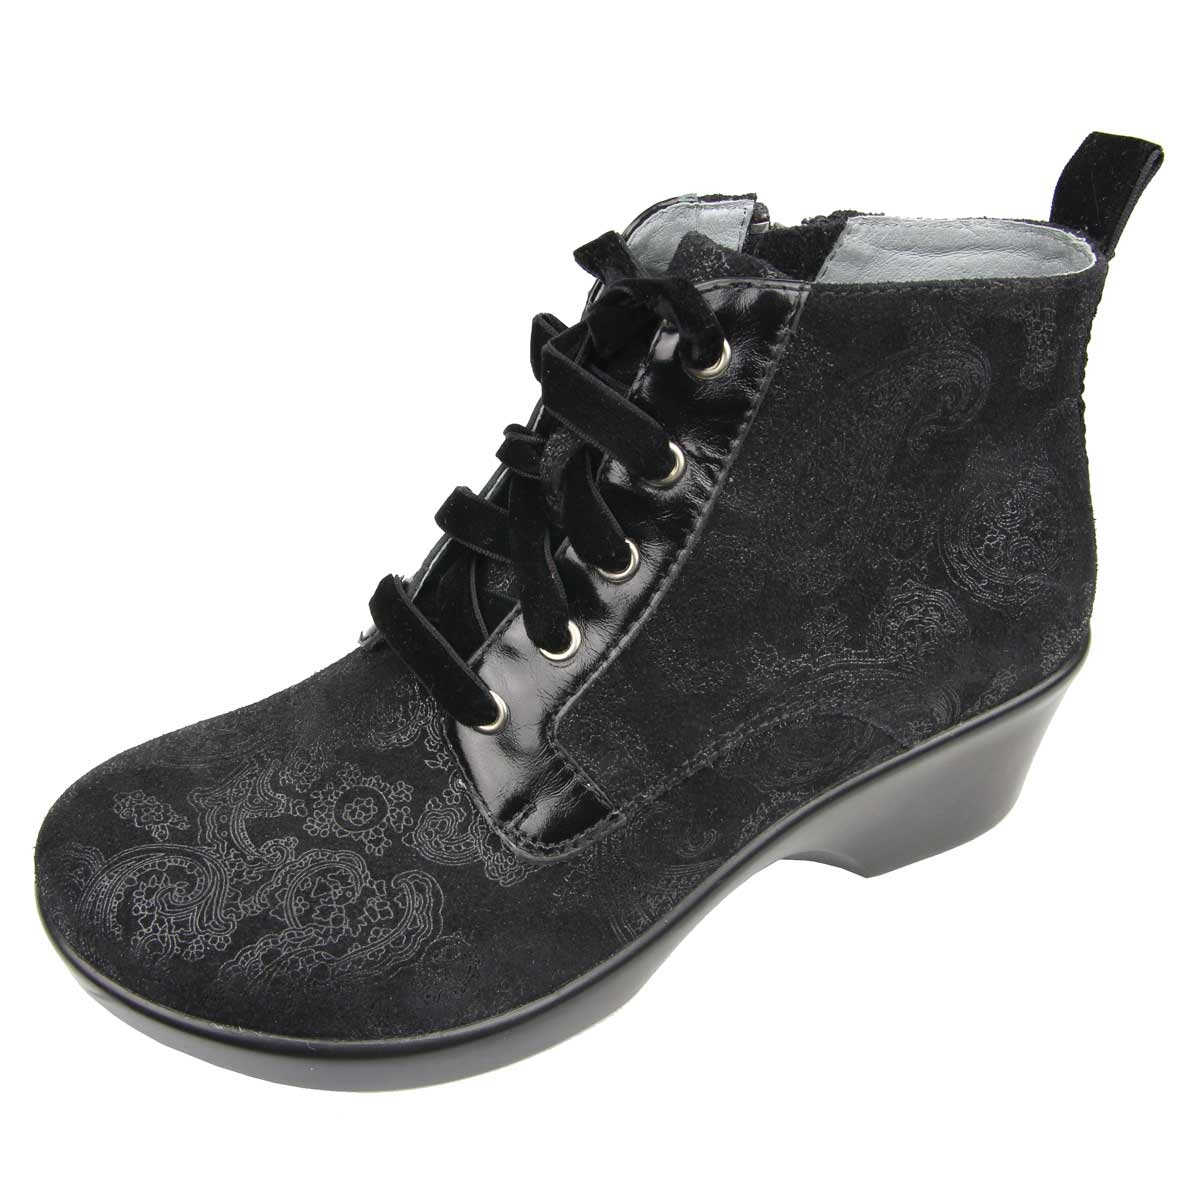 Madi Home Alegria Shoes Eliza Black Beauty Boots | Free Shipping!